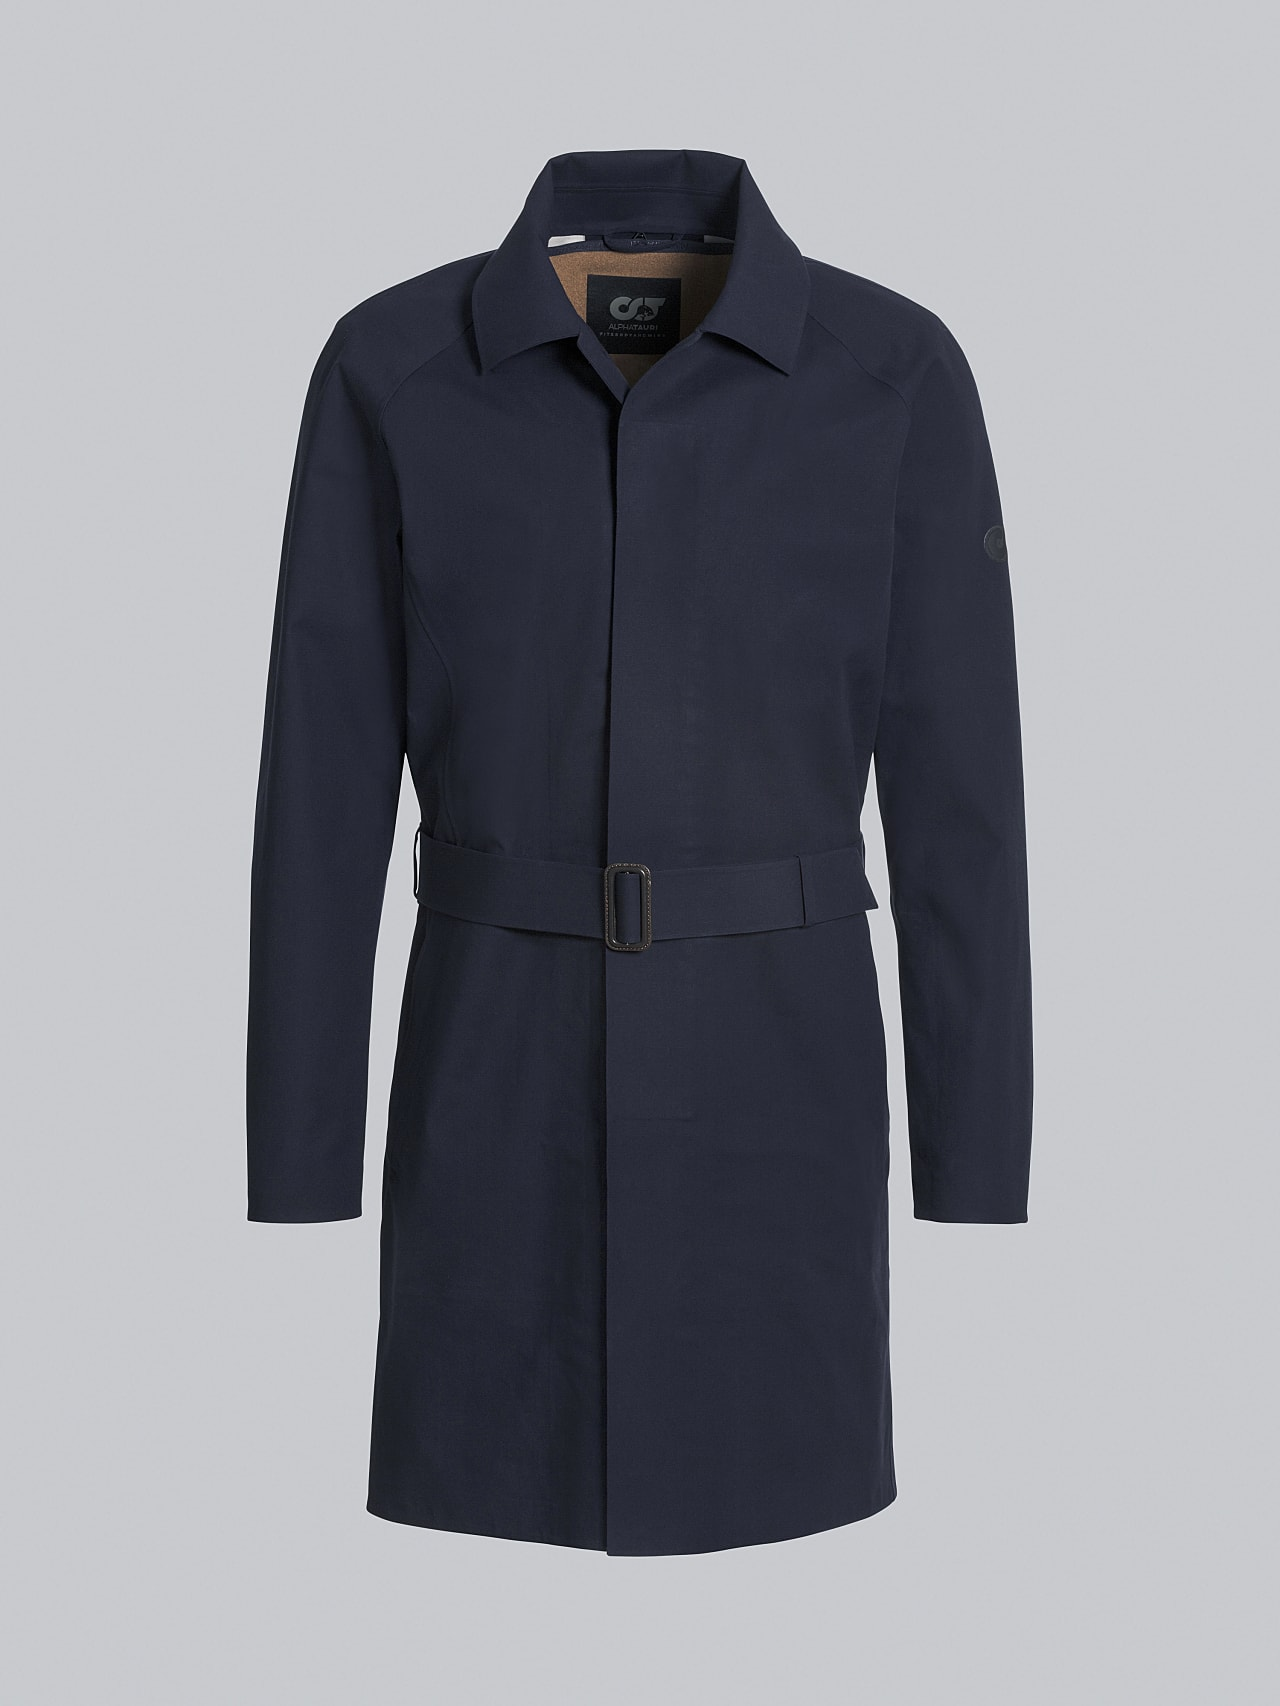 OMANA V1.Y5.02 Packable and Waterproof Trench Coat navy Back Alpha Tauri